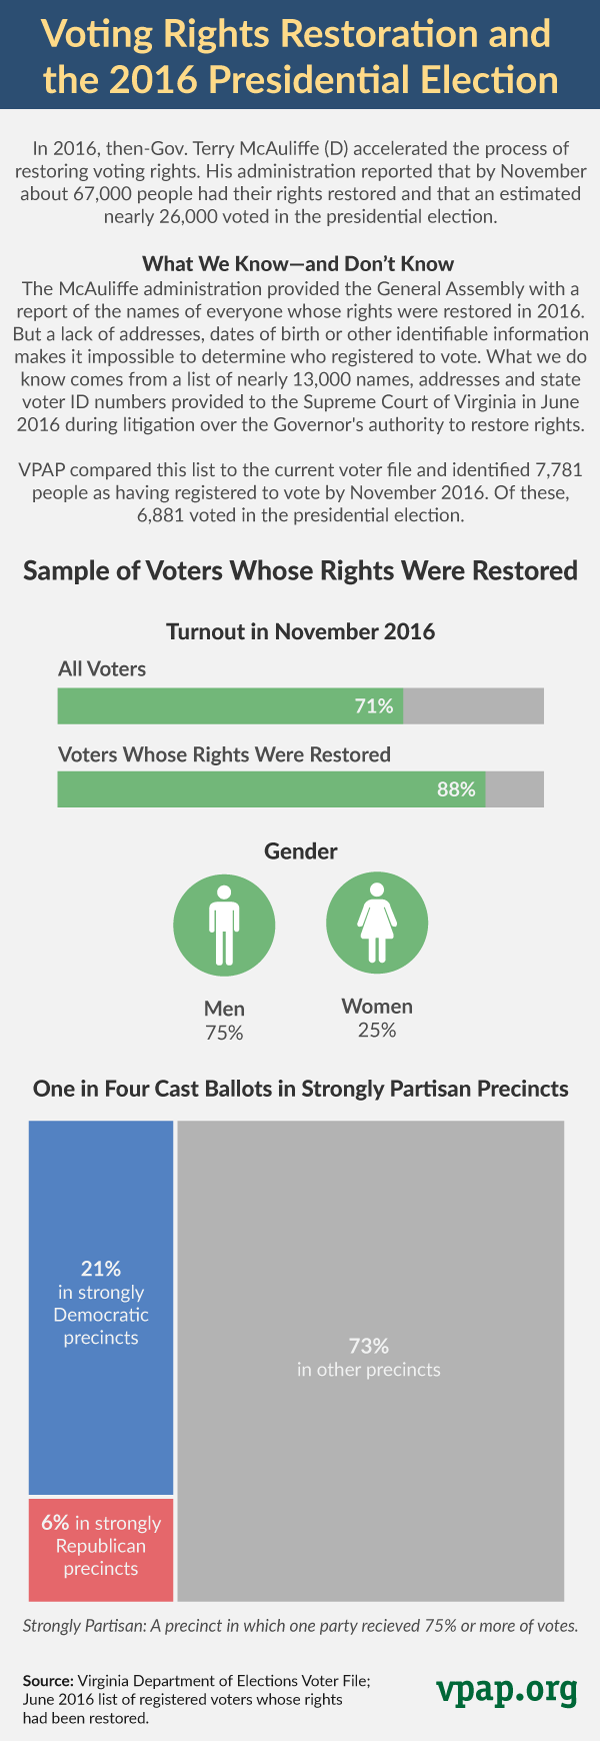 Voting Rights Restoration and the 2016 Presidential Election